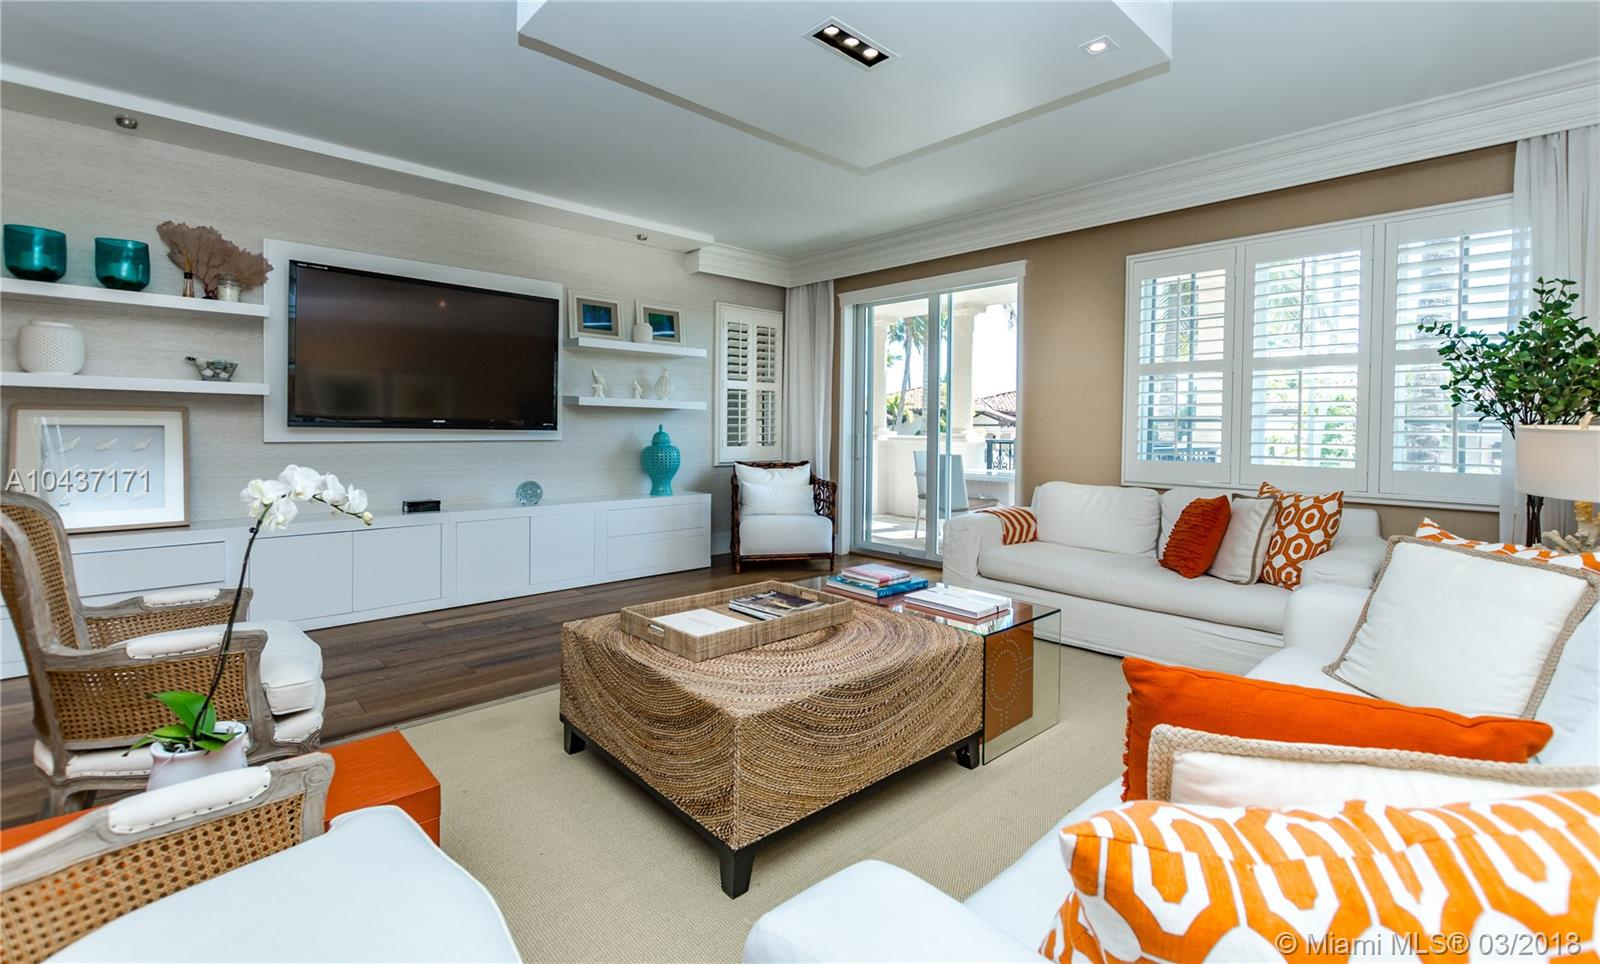 19123  Fisher Island Dr #19123 For Sale A10437171, FL